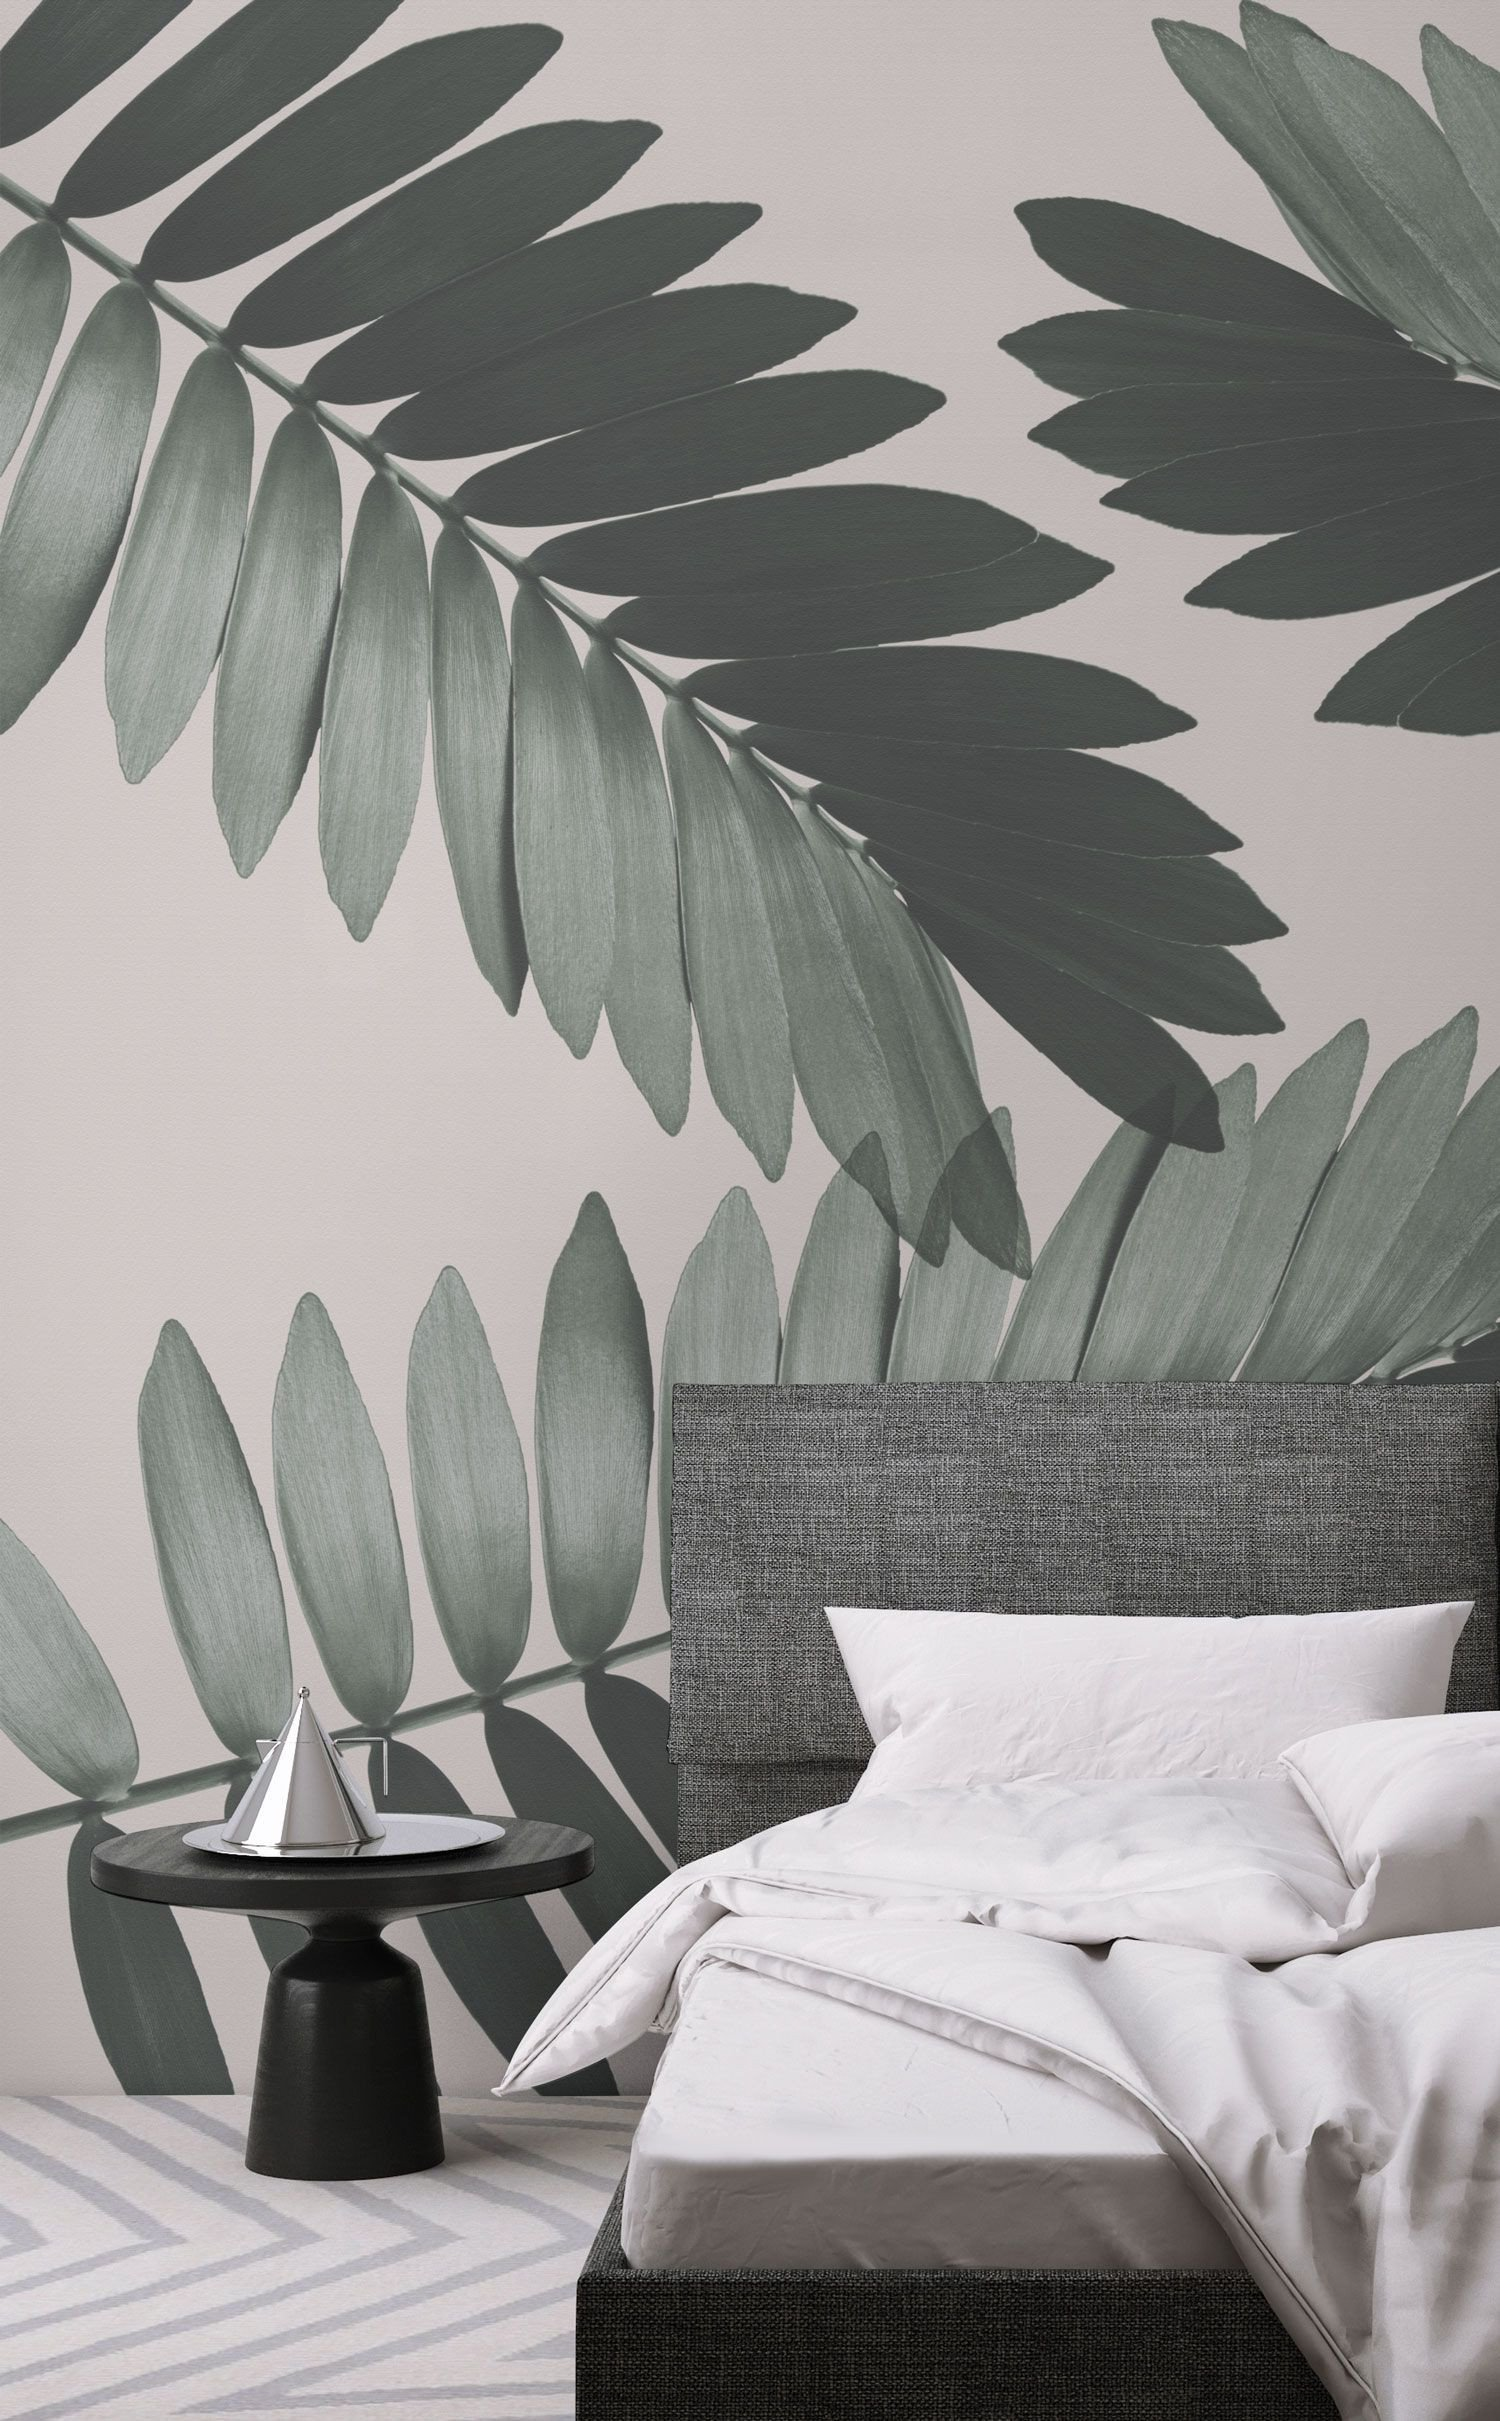 Wall Mural Ideas for Bedroom Best Of Cardboard Palm Wall Mural In 2020